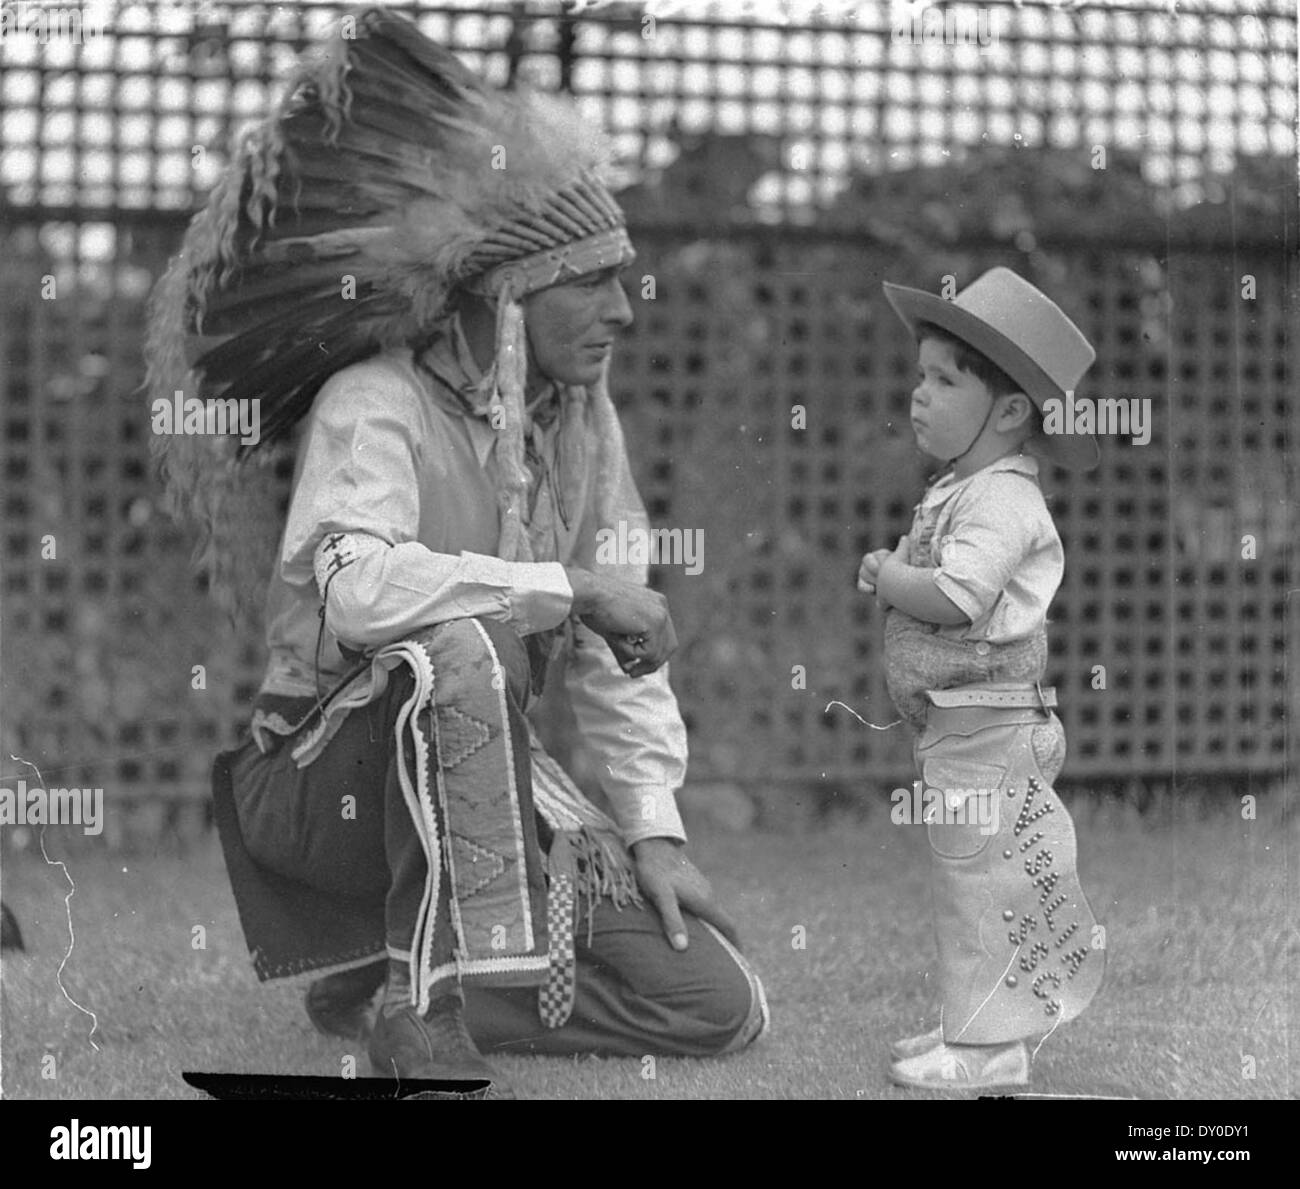 Visiting Indian Chief High Eagle talks with Johnny Schneider (aged about 3 or 4 and dressed in cowboy outfit), White City, Sydney, 11 Jan 1935 / photographer Sam Hood - Stock Image